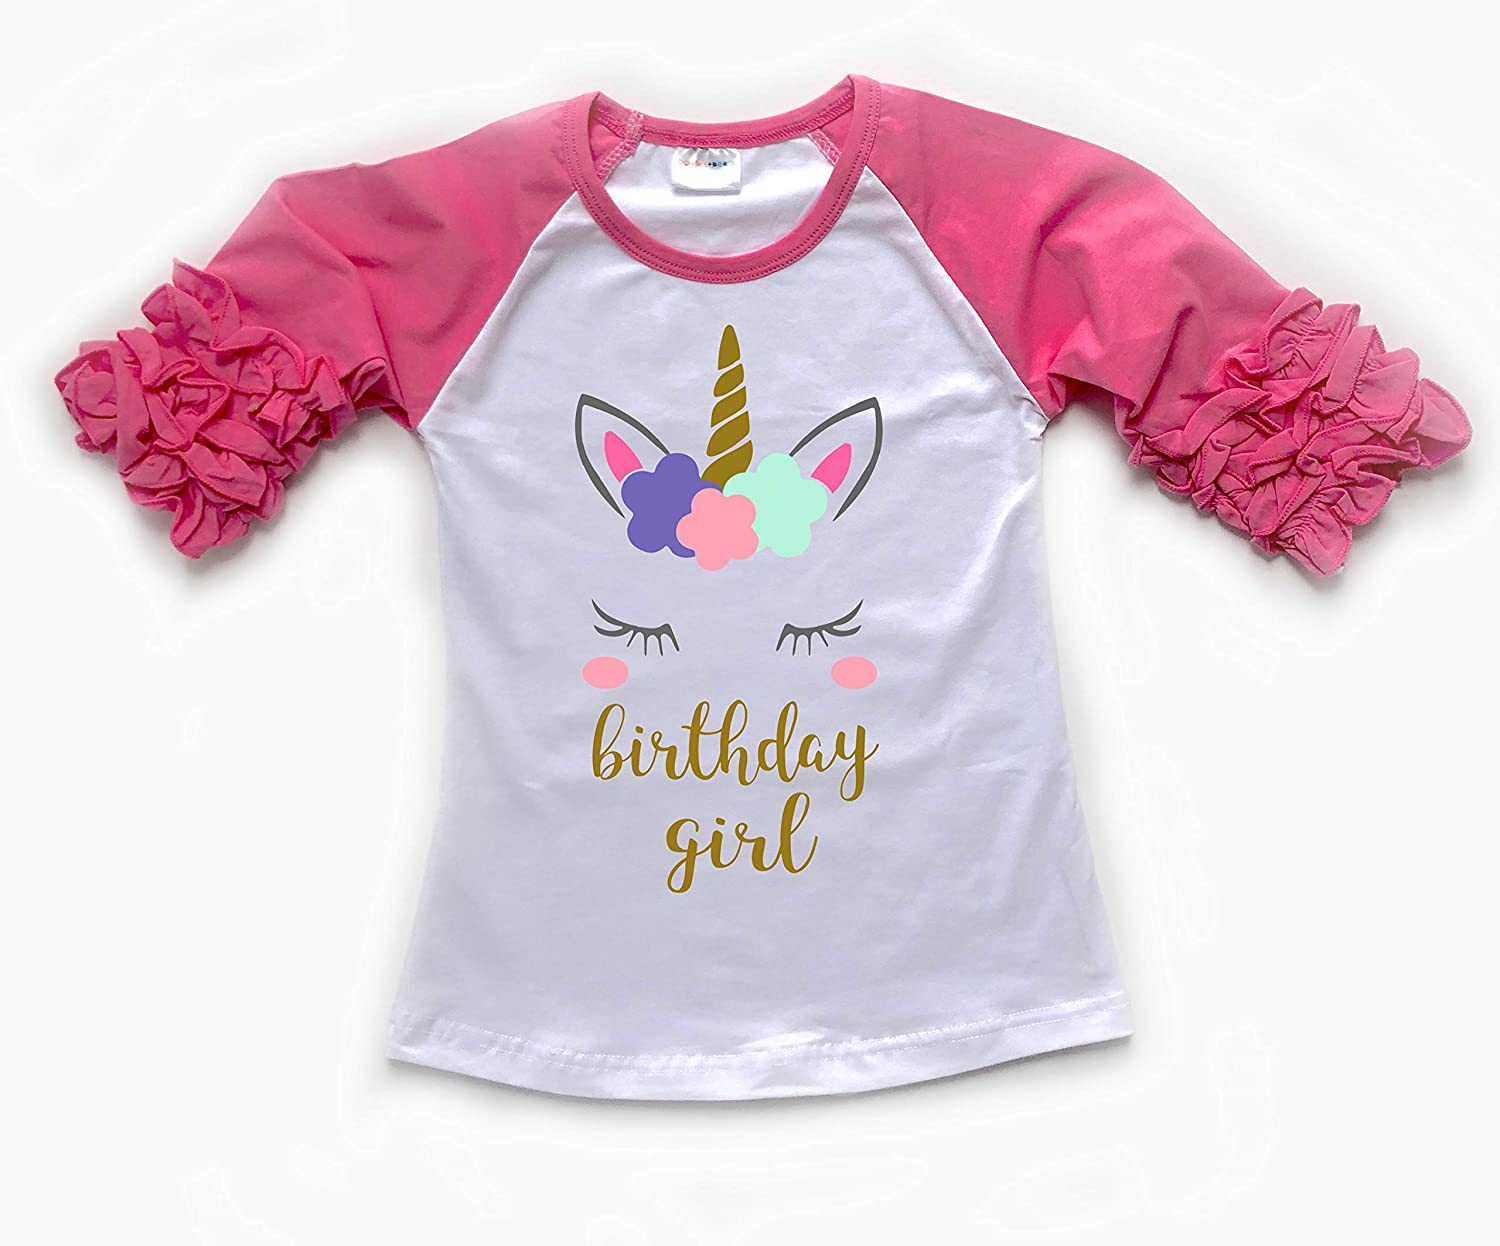 Unicorn Birthday Shirt Girls Ruffle Tee Size XL 8 9